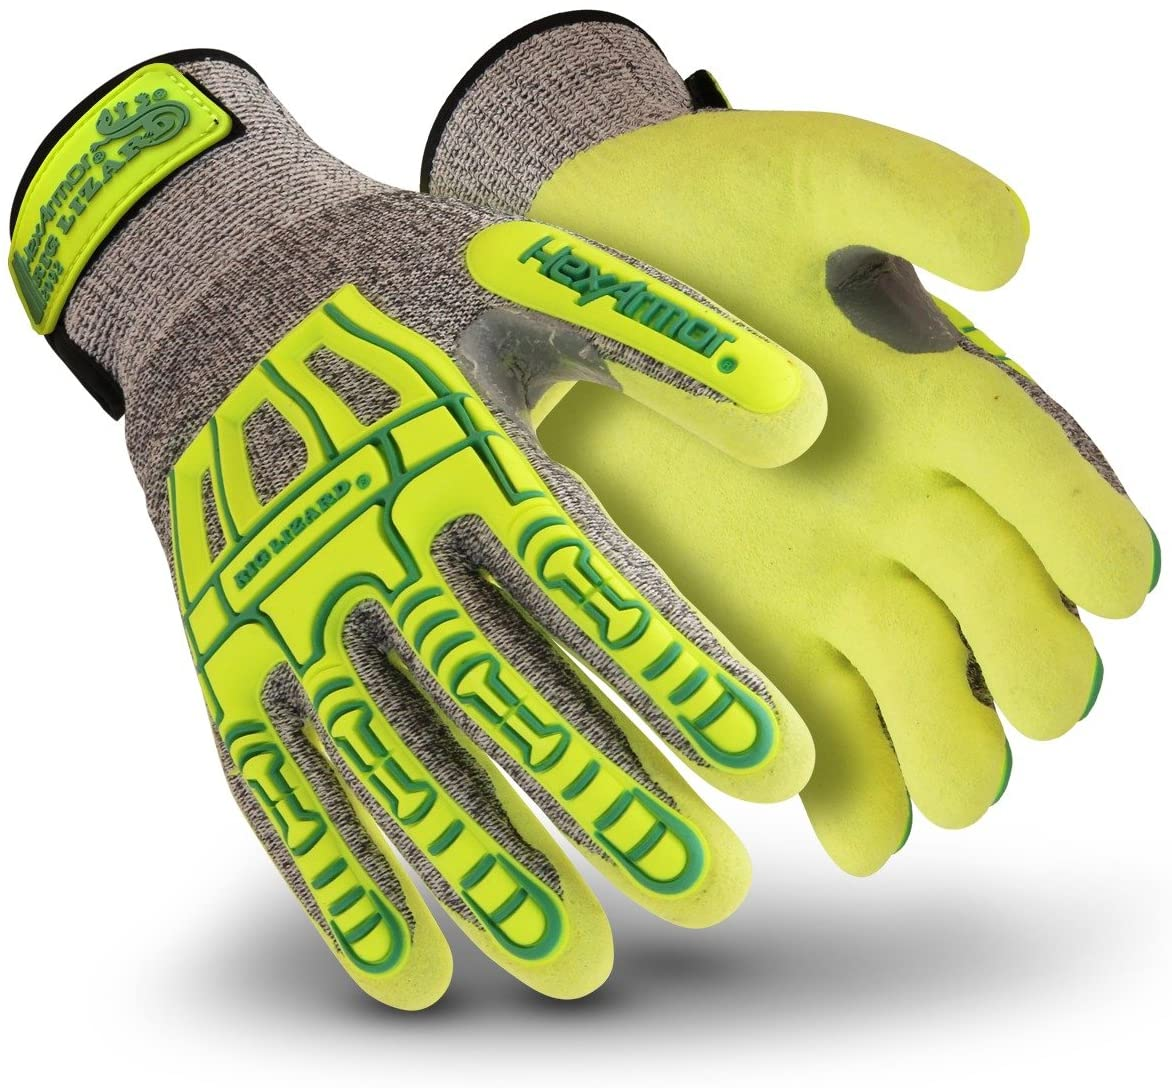 HexArmor Rig Lizard Thin Lizzie 2092 Impact Work Gloves with Sandy Nitrile Coated Palm, Medium